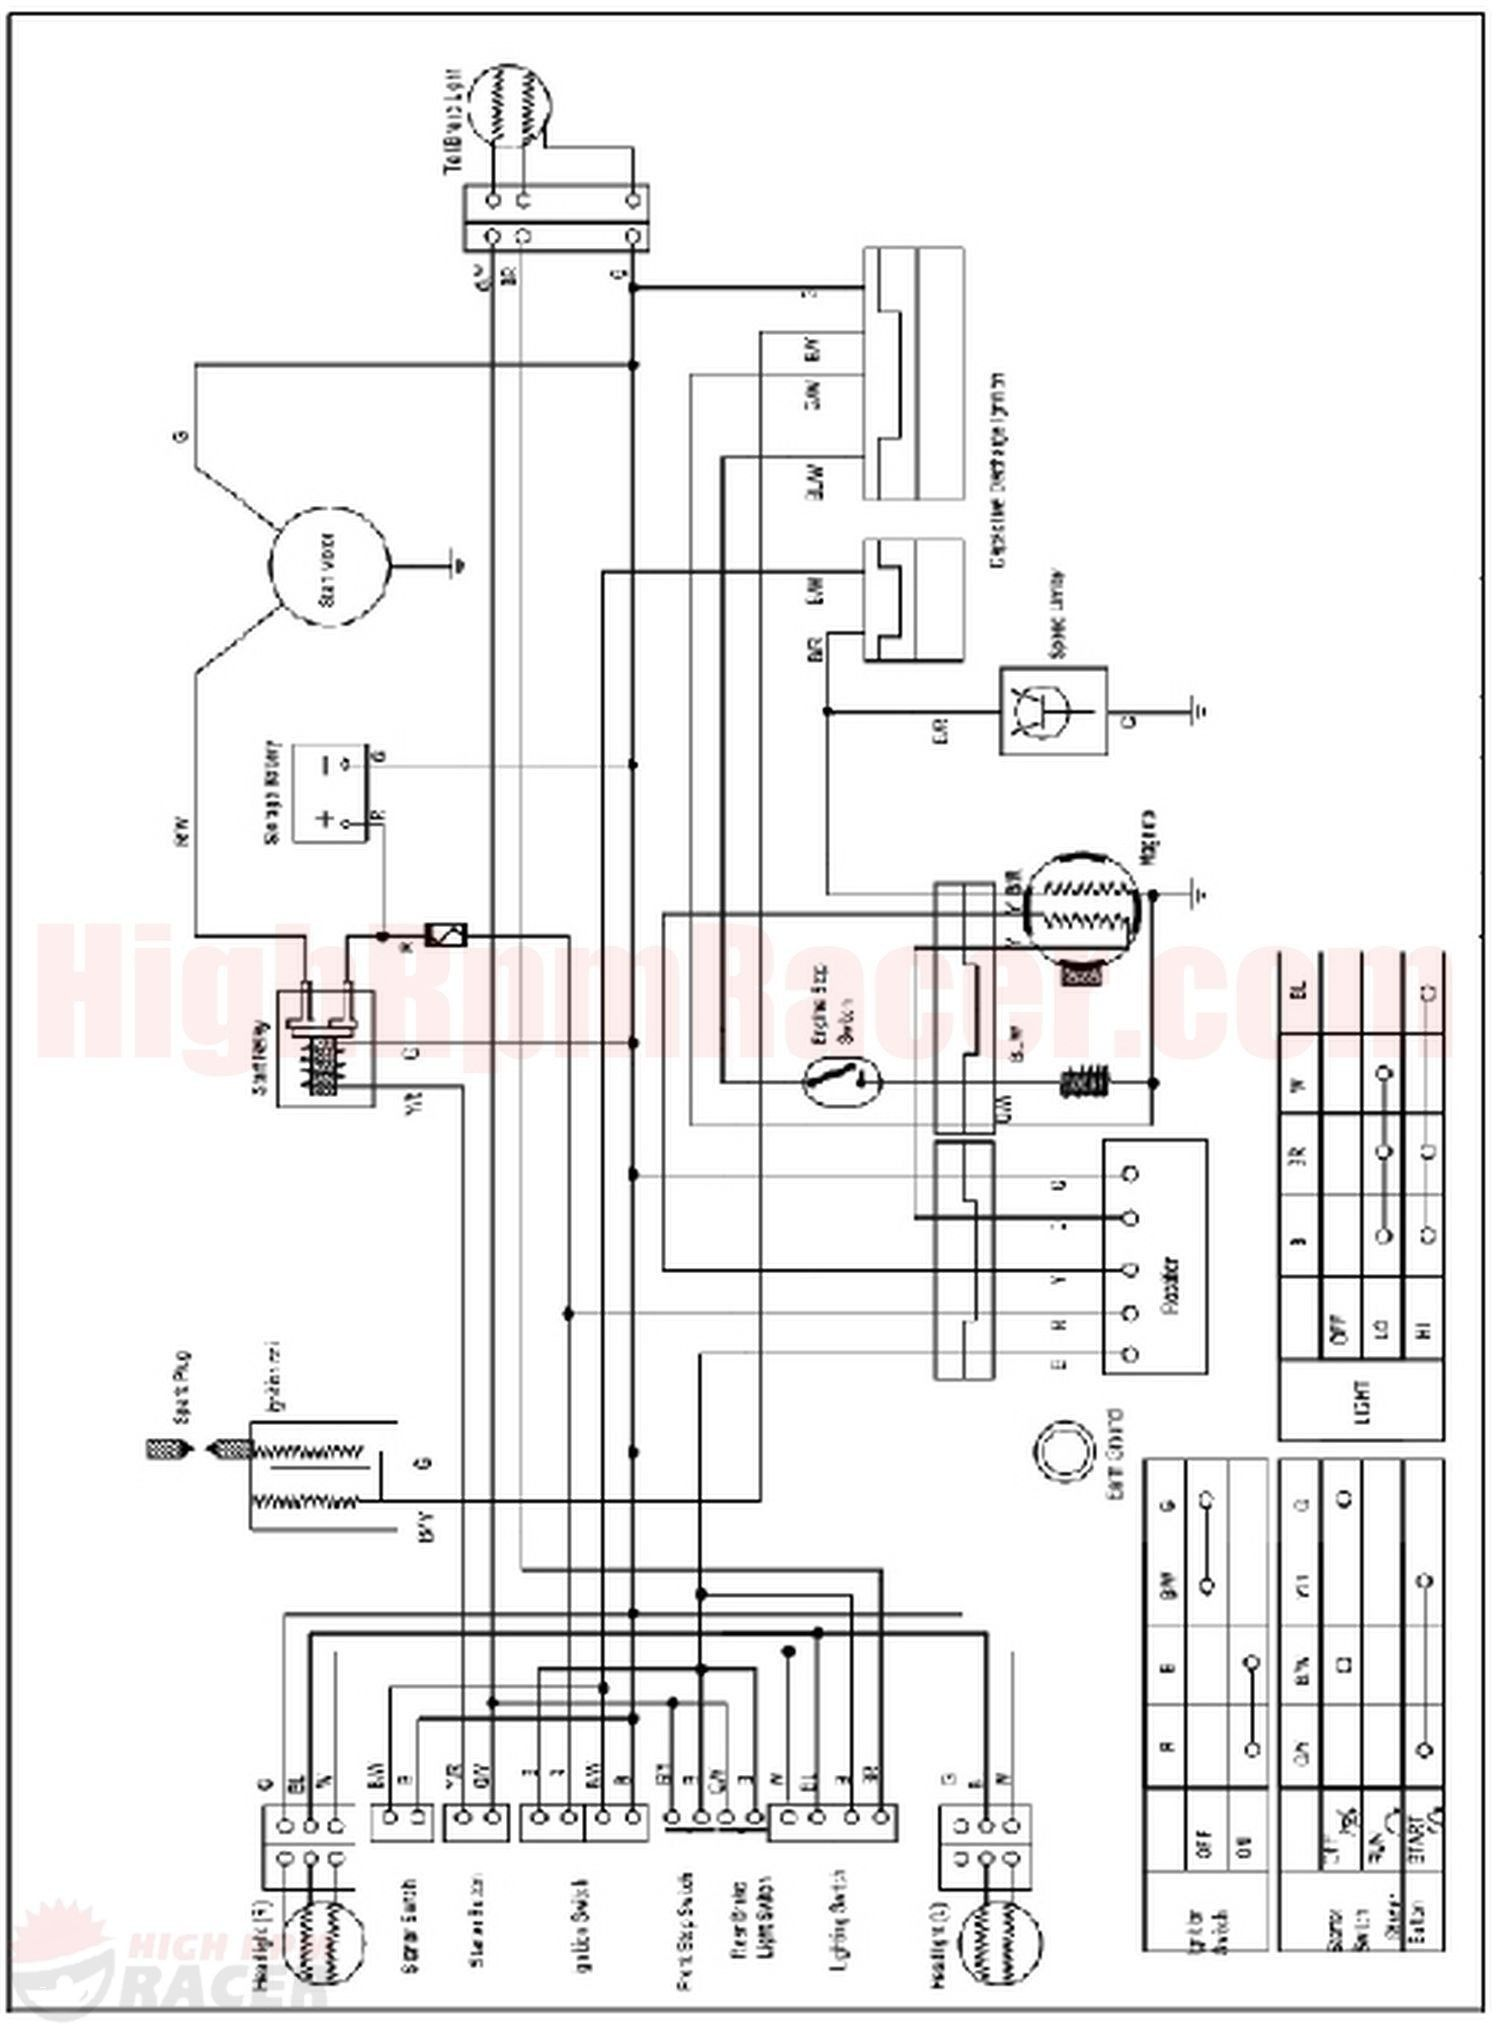 Wiring Diagram For 110cc 4 Wheeler Inspirational 110cc Chinese Atv Electrical Wiring Diagram Diagram Electrical Diagram